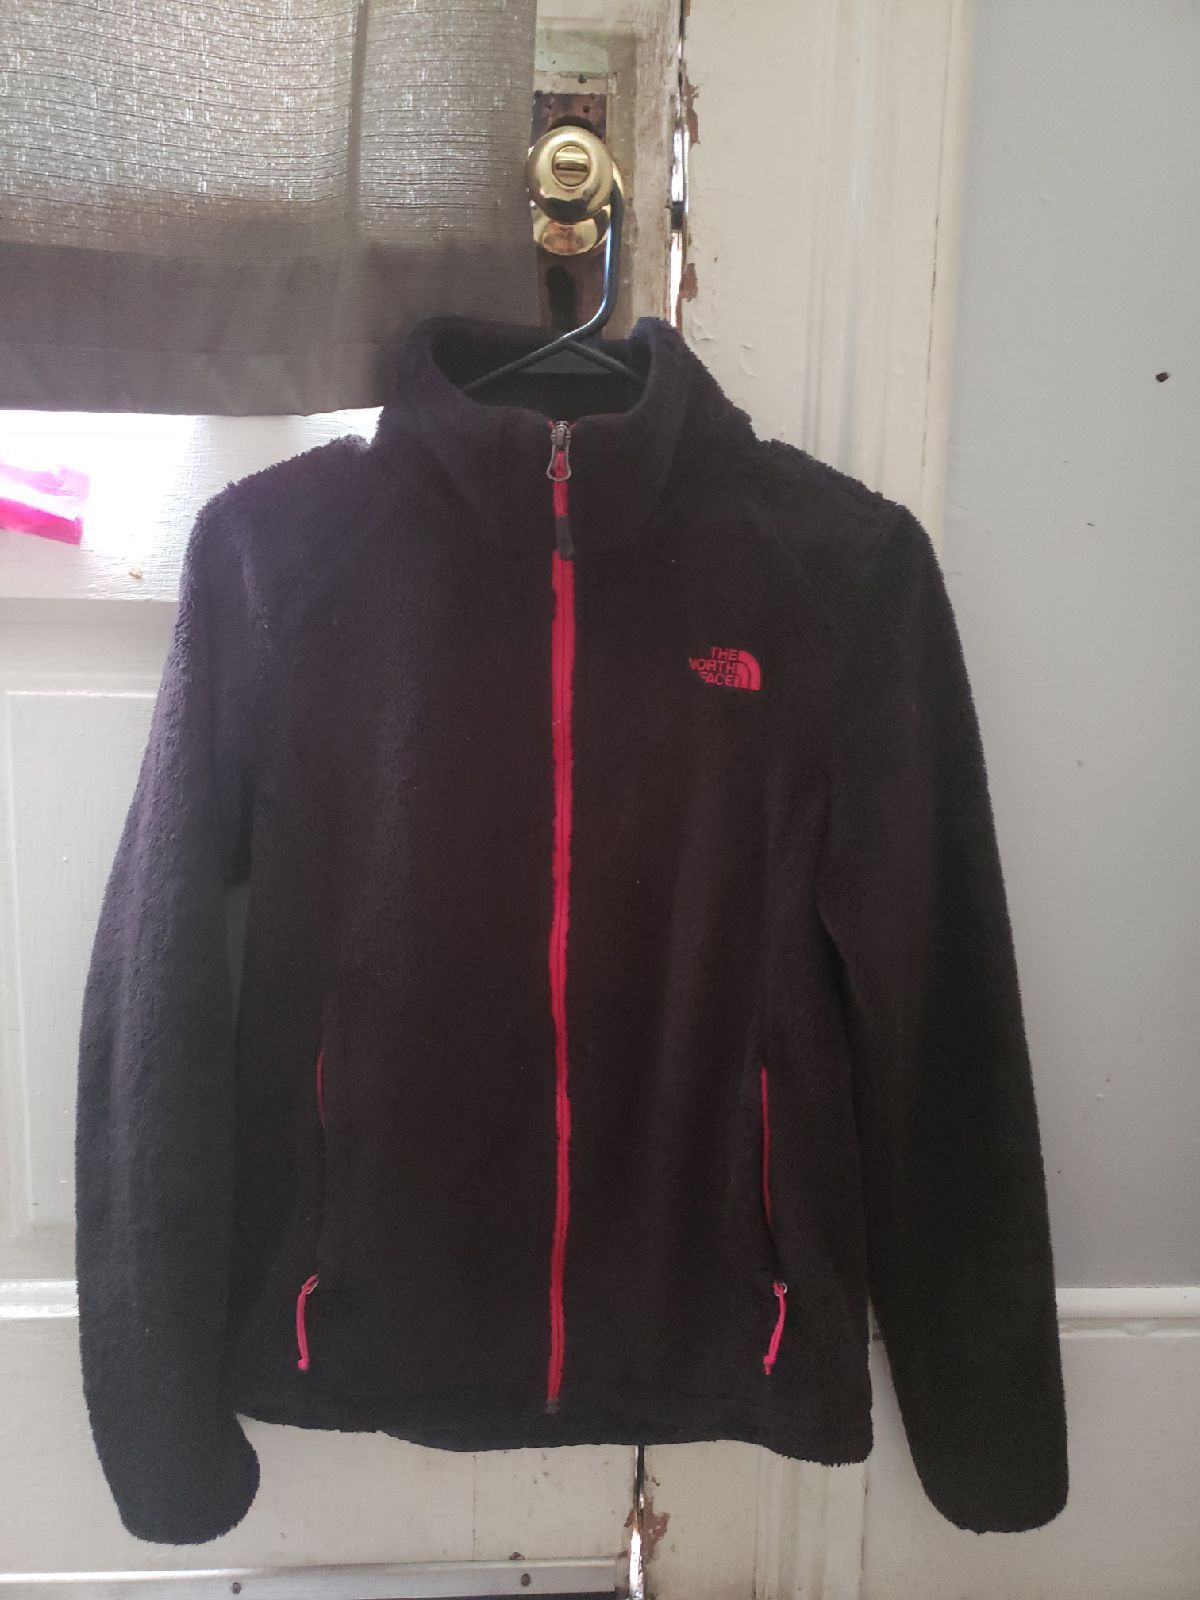 Barely Worn Has Been Taken Good Care Of Fuzzy Black Northface With Hot Pink Logo The North Face North Face Jacket North Face Fleece Jacket [ 1600 x 1200 Pixel ]